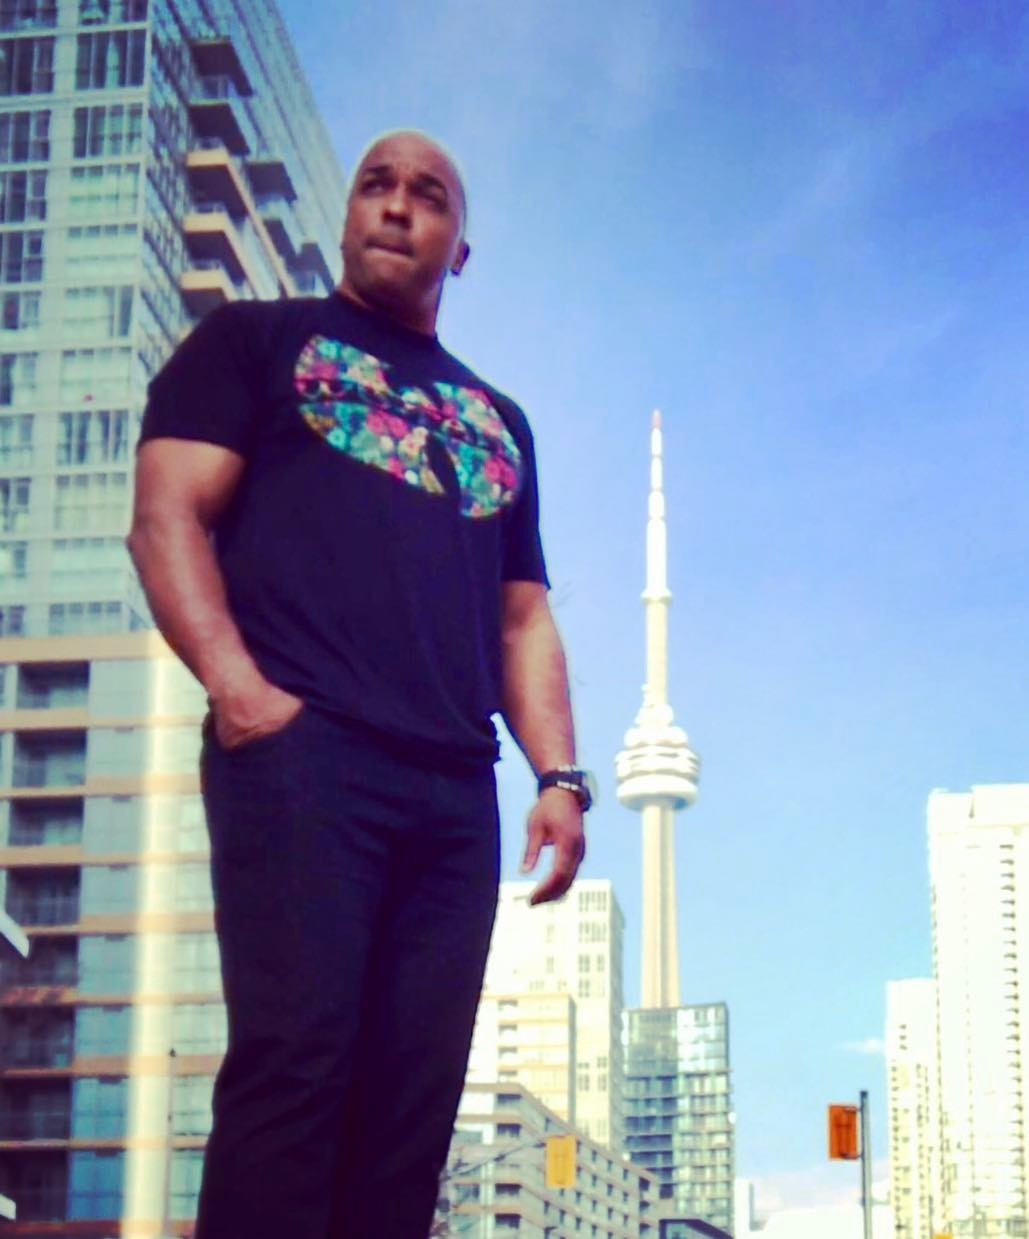 DJ Corey Young prior to Hosting and Spinning a private party in the city of Toronto Canada